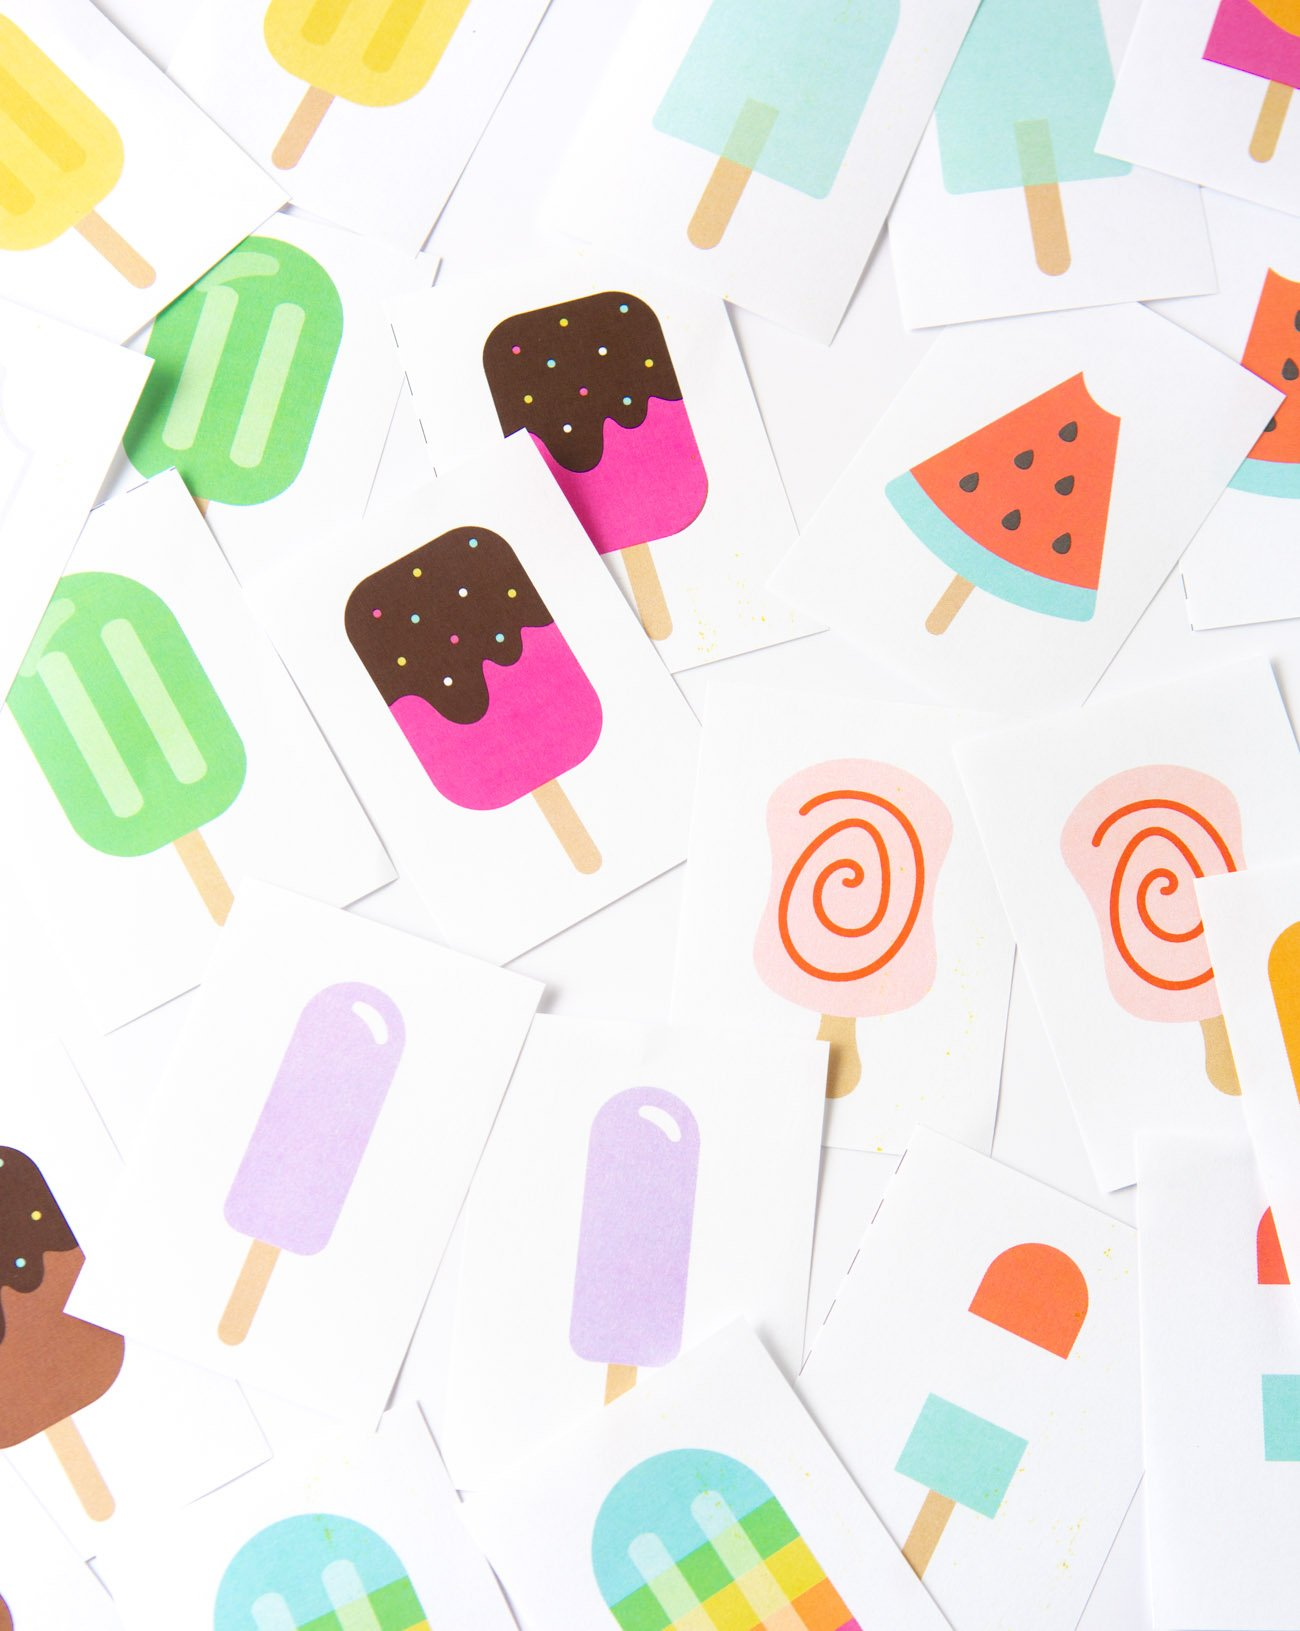 Messy arrangement of popsicle printable memory cards